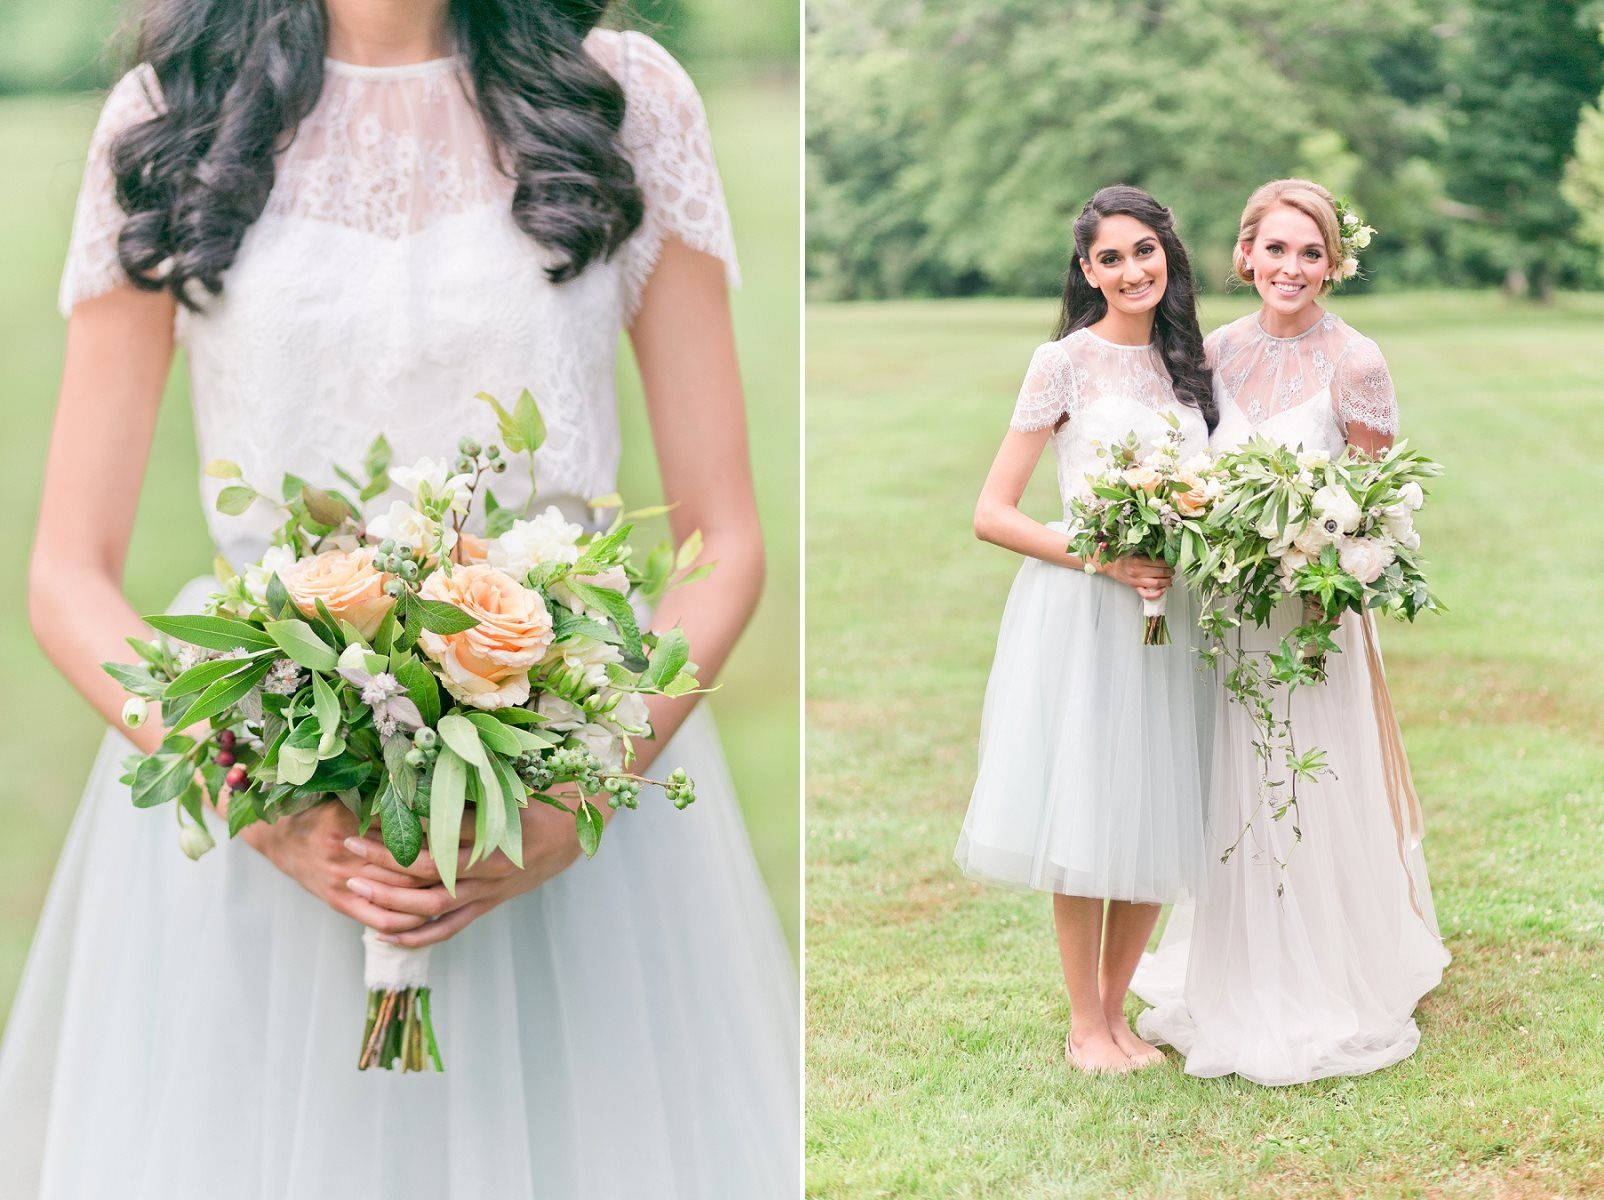 Pretty spring wedding ideas in soft pastels and rose gold romantic